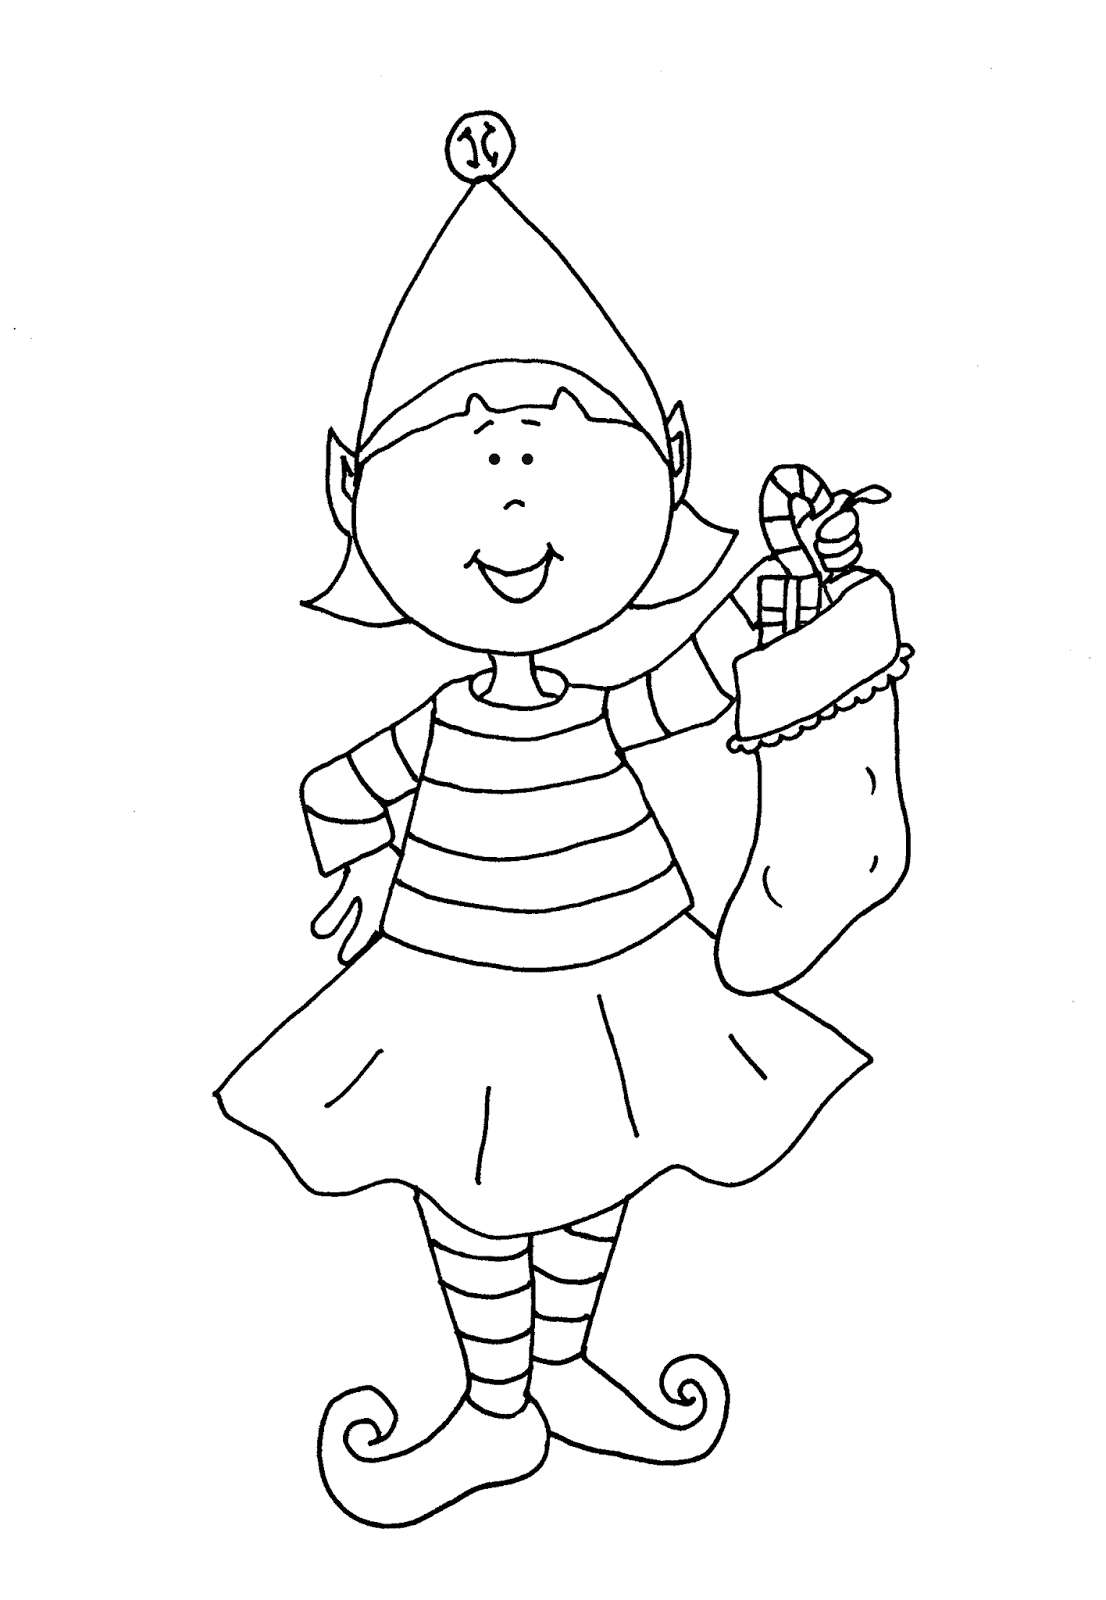 Christmas Elf Coloring Pictures With Pages Free Download Book